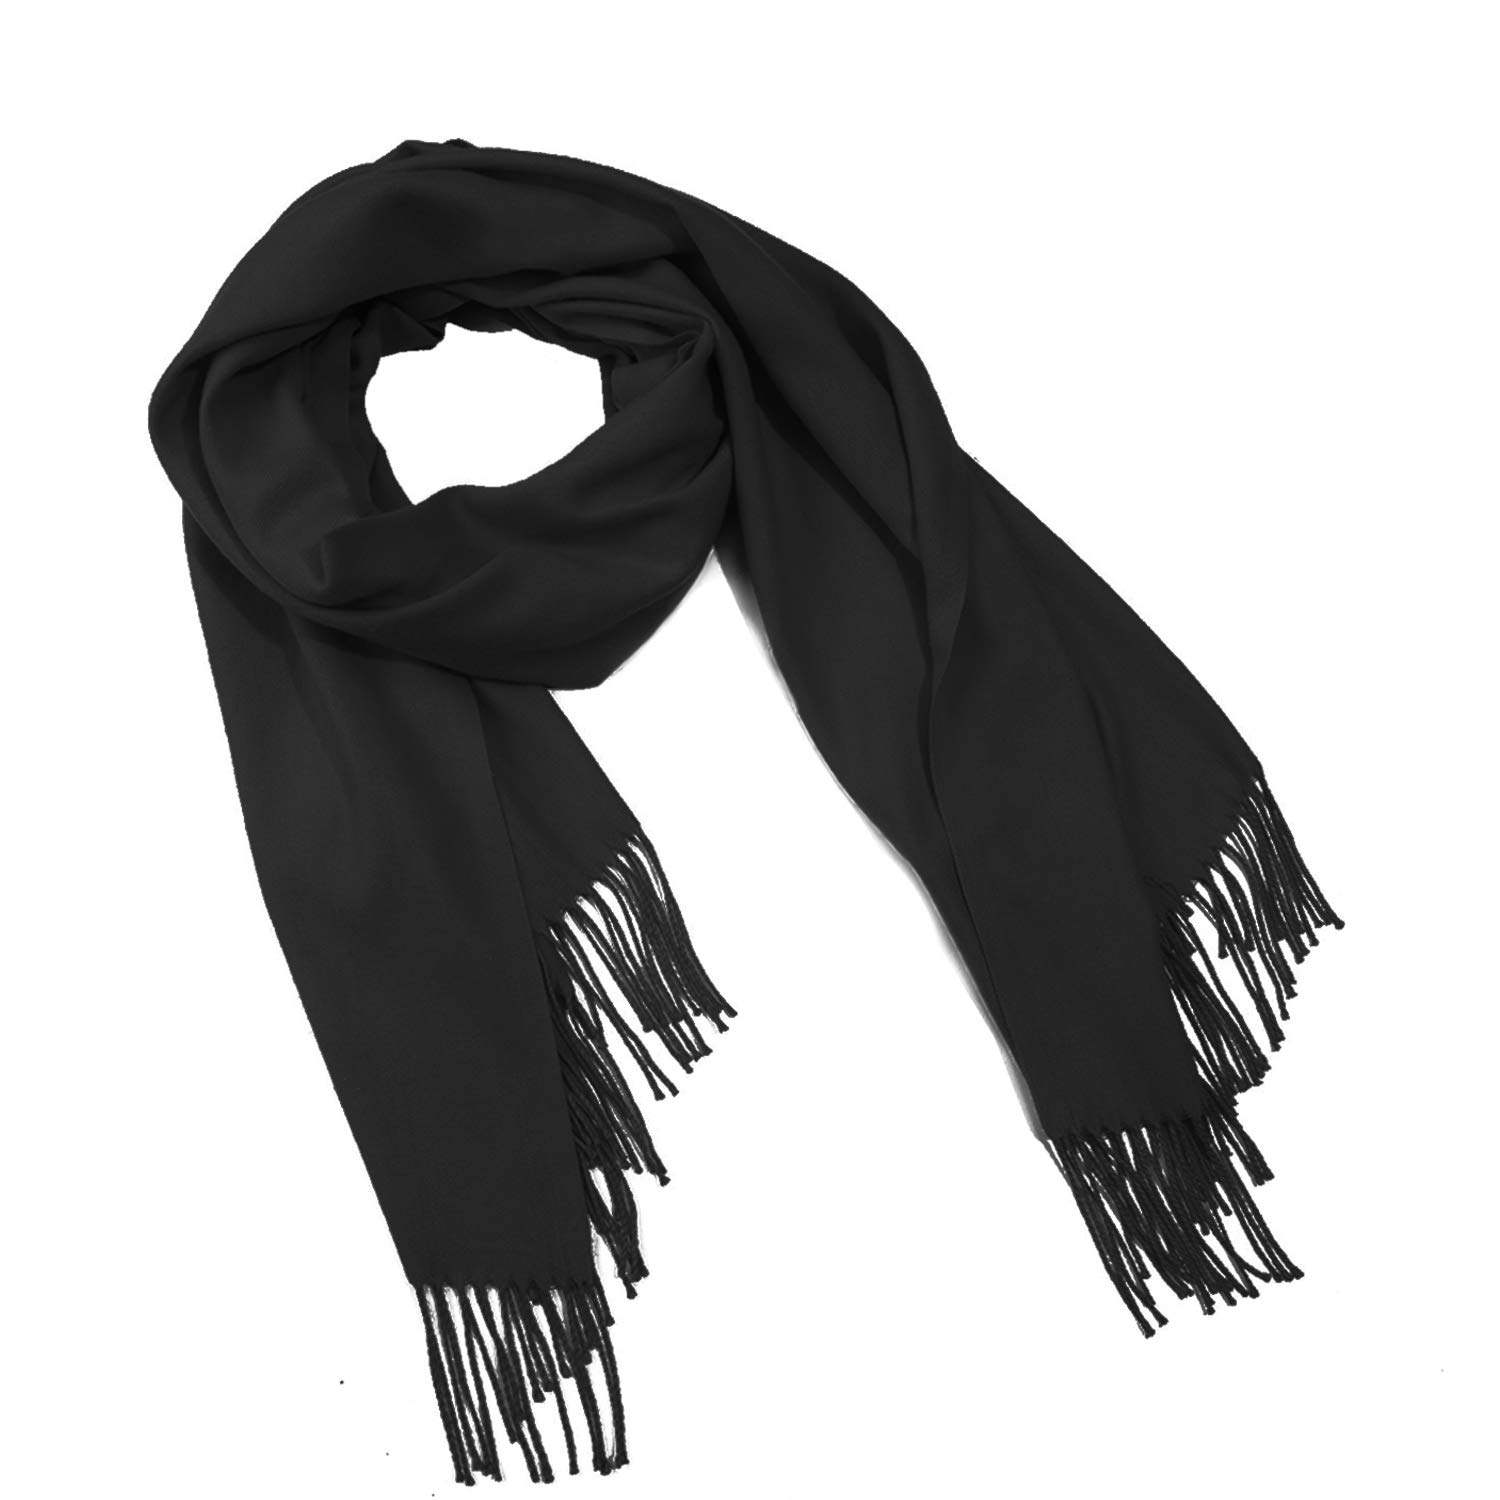 6aabdc4b35496 Pashmina Scarf for Women - 2019 Fashion Cashmere Wrap Shawl Solid  Colors(Black): Amazon.ca: Clothing & Accessories